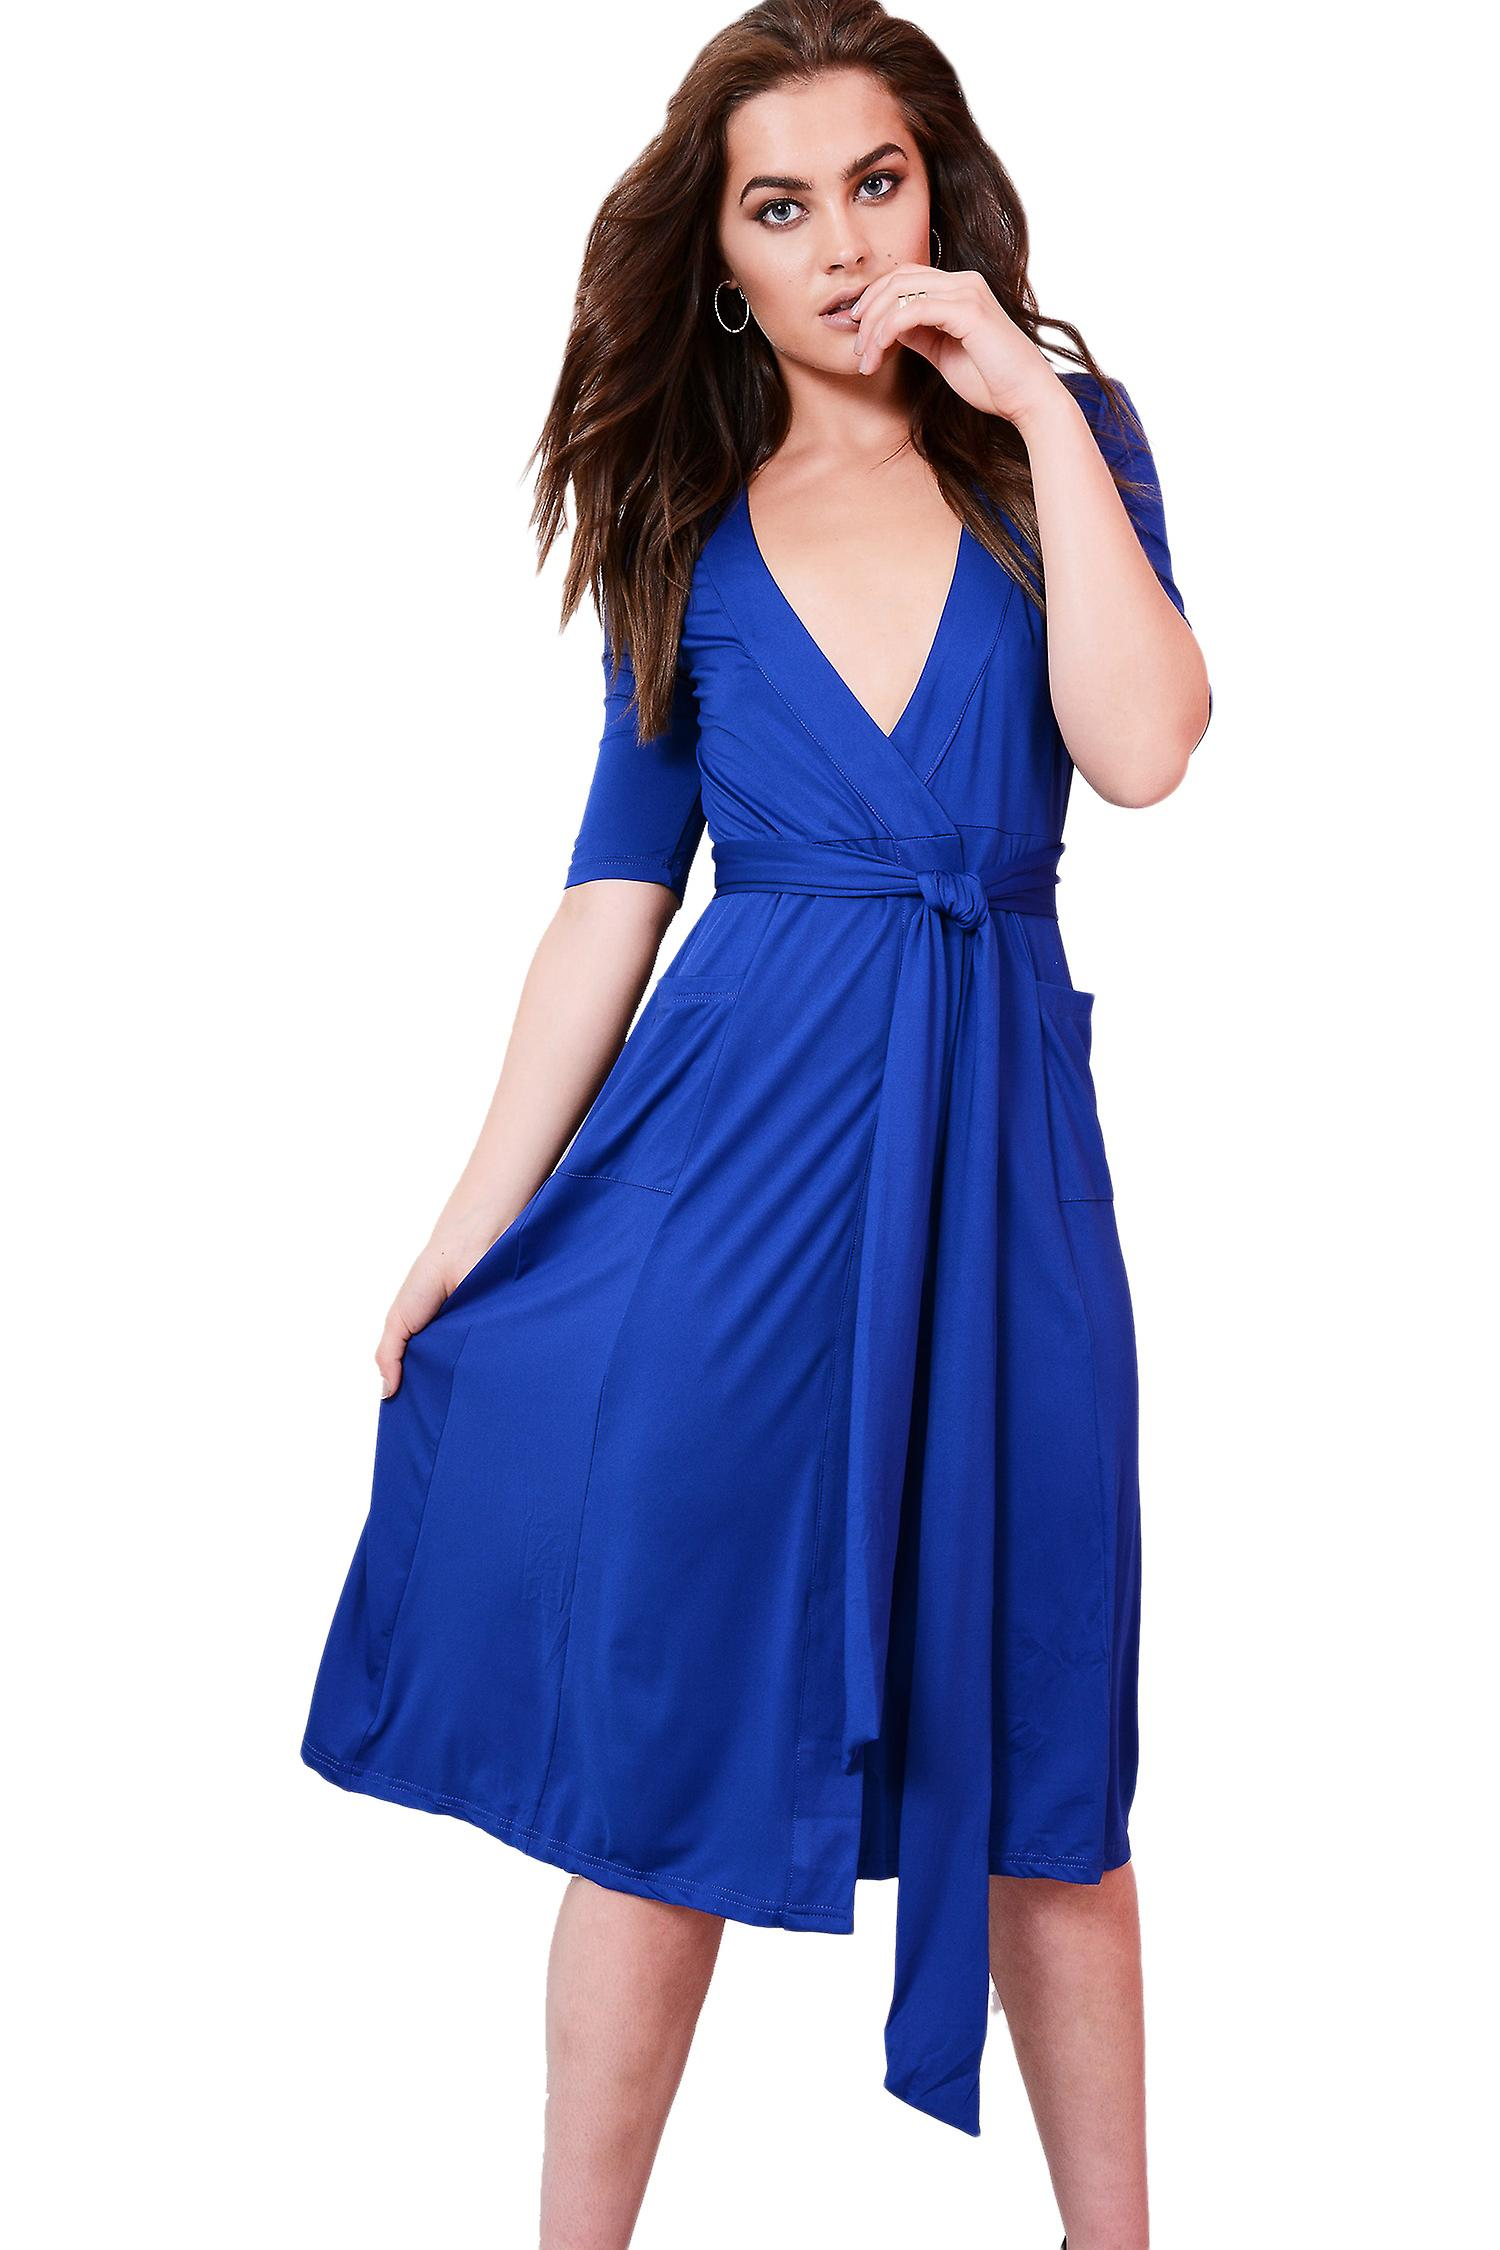 Lovemystyle Royal Blue Midi Dress With Plunge Neck And Tie Waist